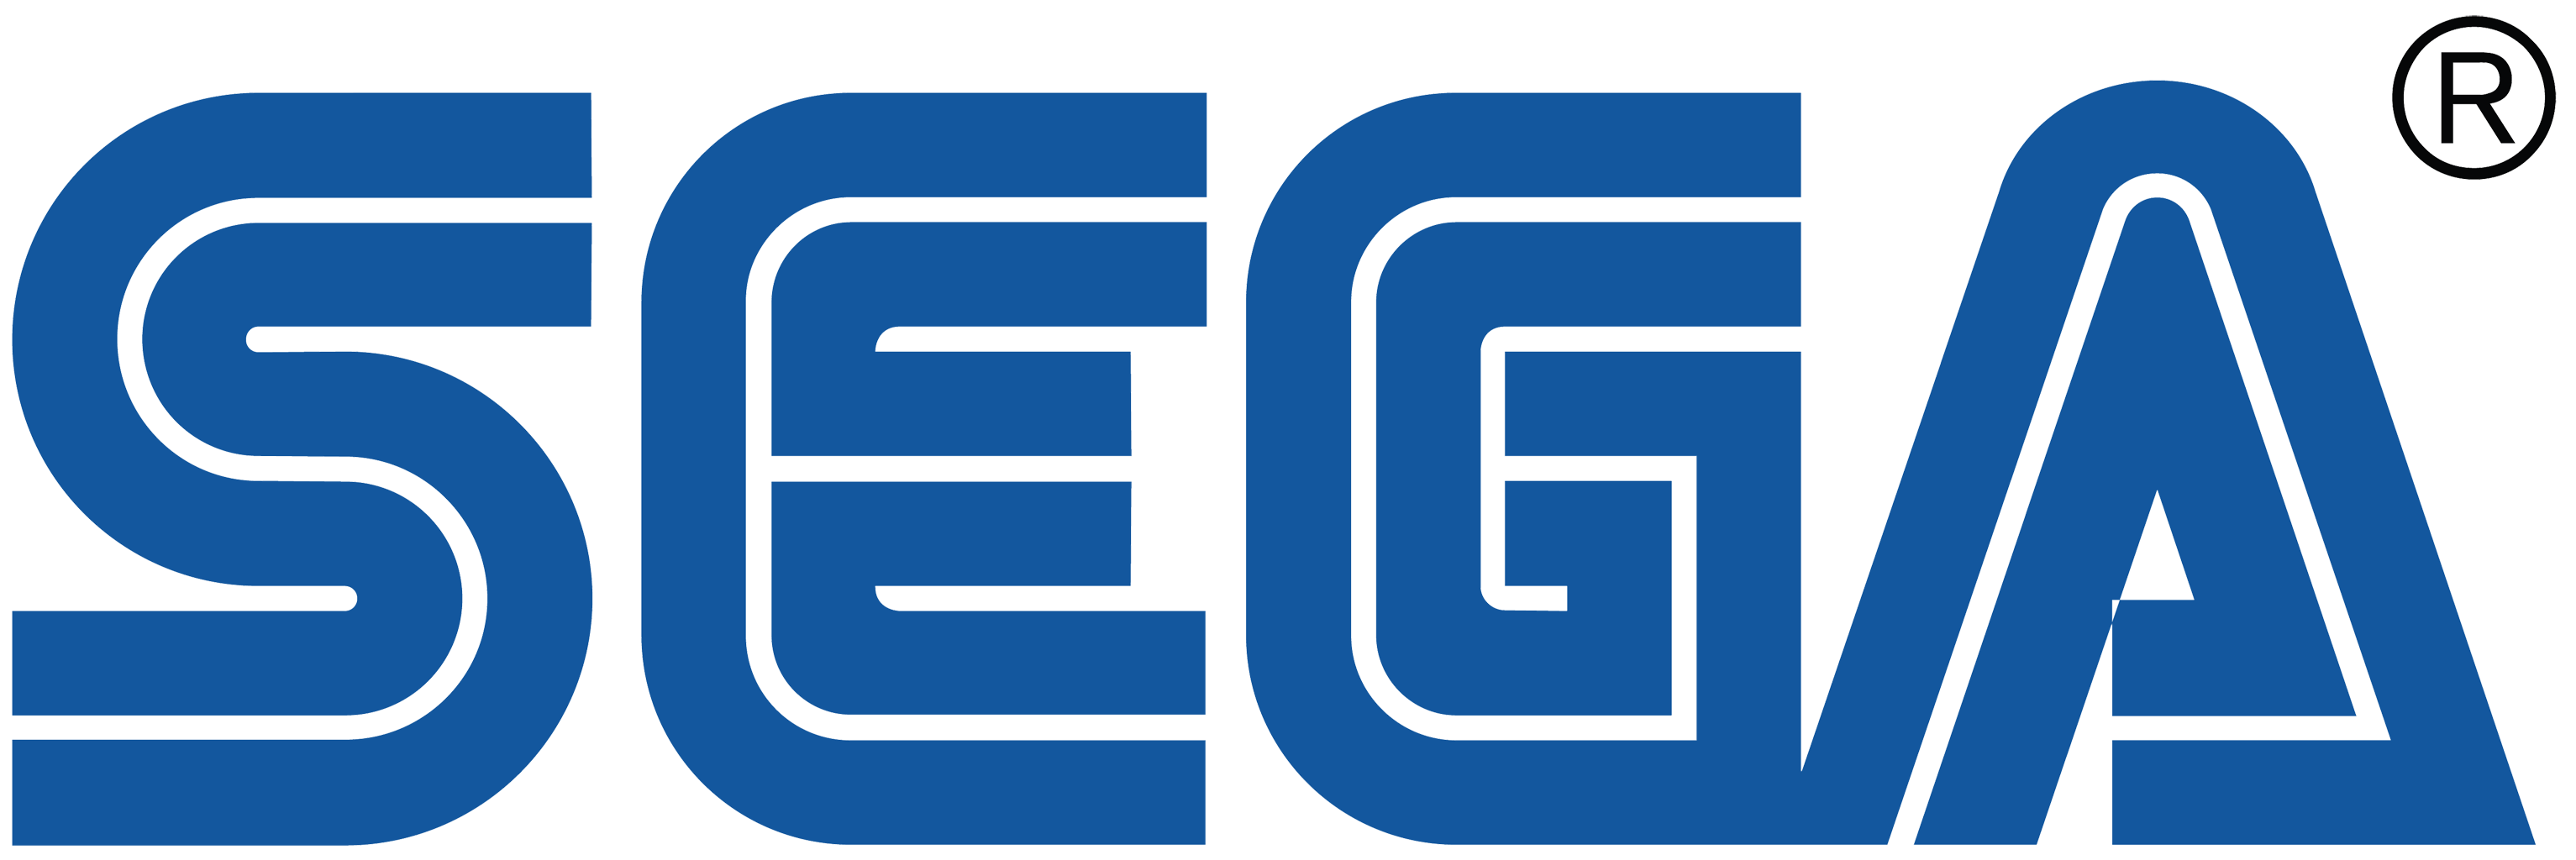 File Sega Logo Png Wikimedia Commons